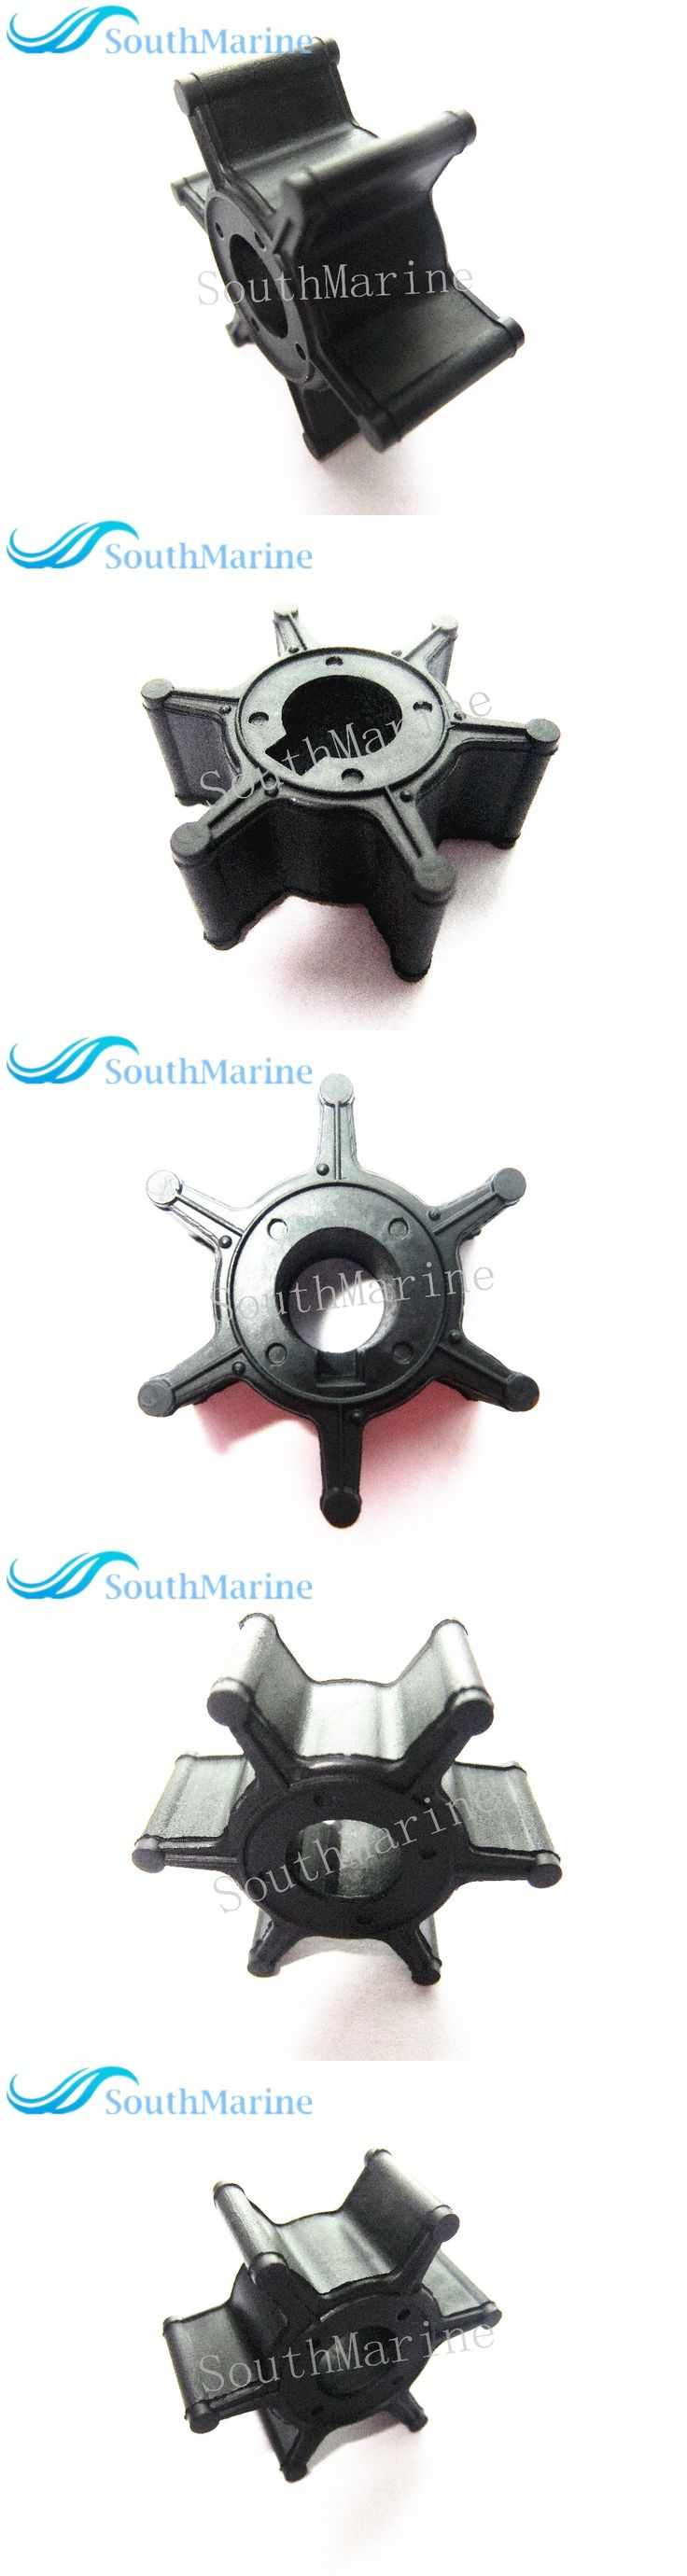 Boat Engine Impeller 6L5-44352-00 for Yamaha 4-Stroke 2.5HP F2.5 Outboard Motor Water Pump , Hidea Outboard Impeller